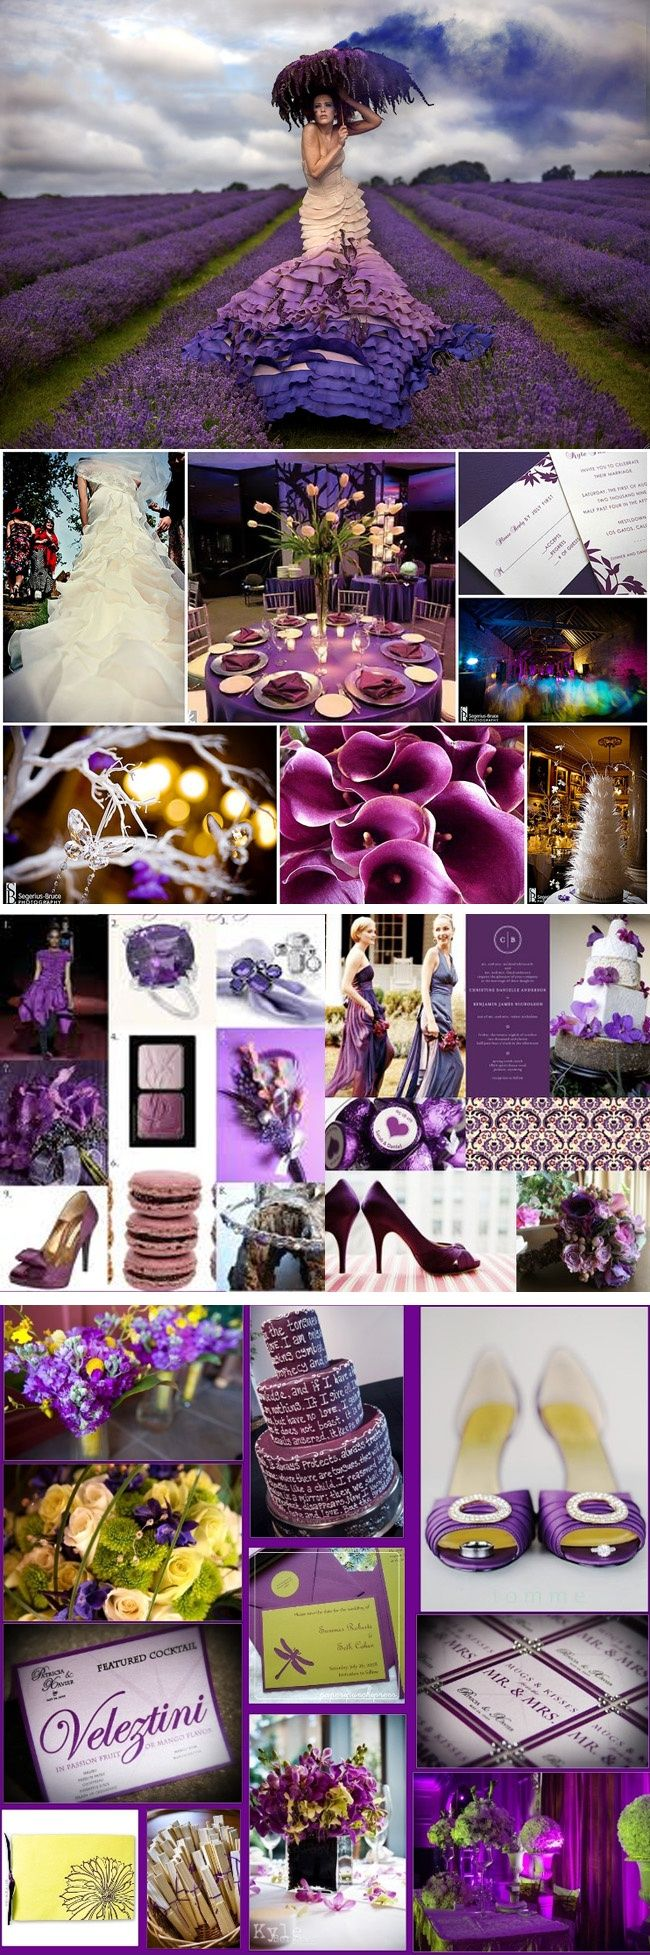 Are you planning a Purple and Teal Wedding? Weddingnewsday has tons of inspiring Purple and Teal Wedding photos showcasing the best Purple and Teal Wedding